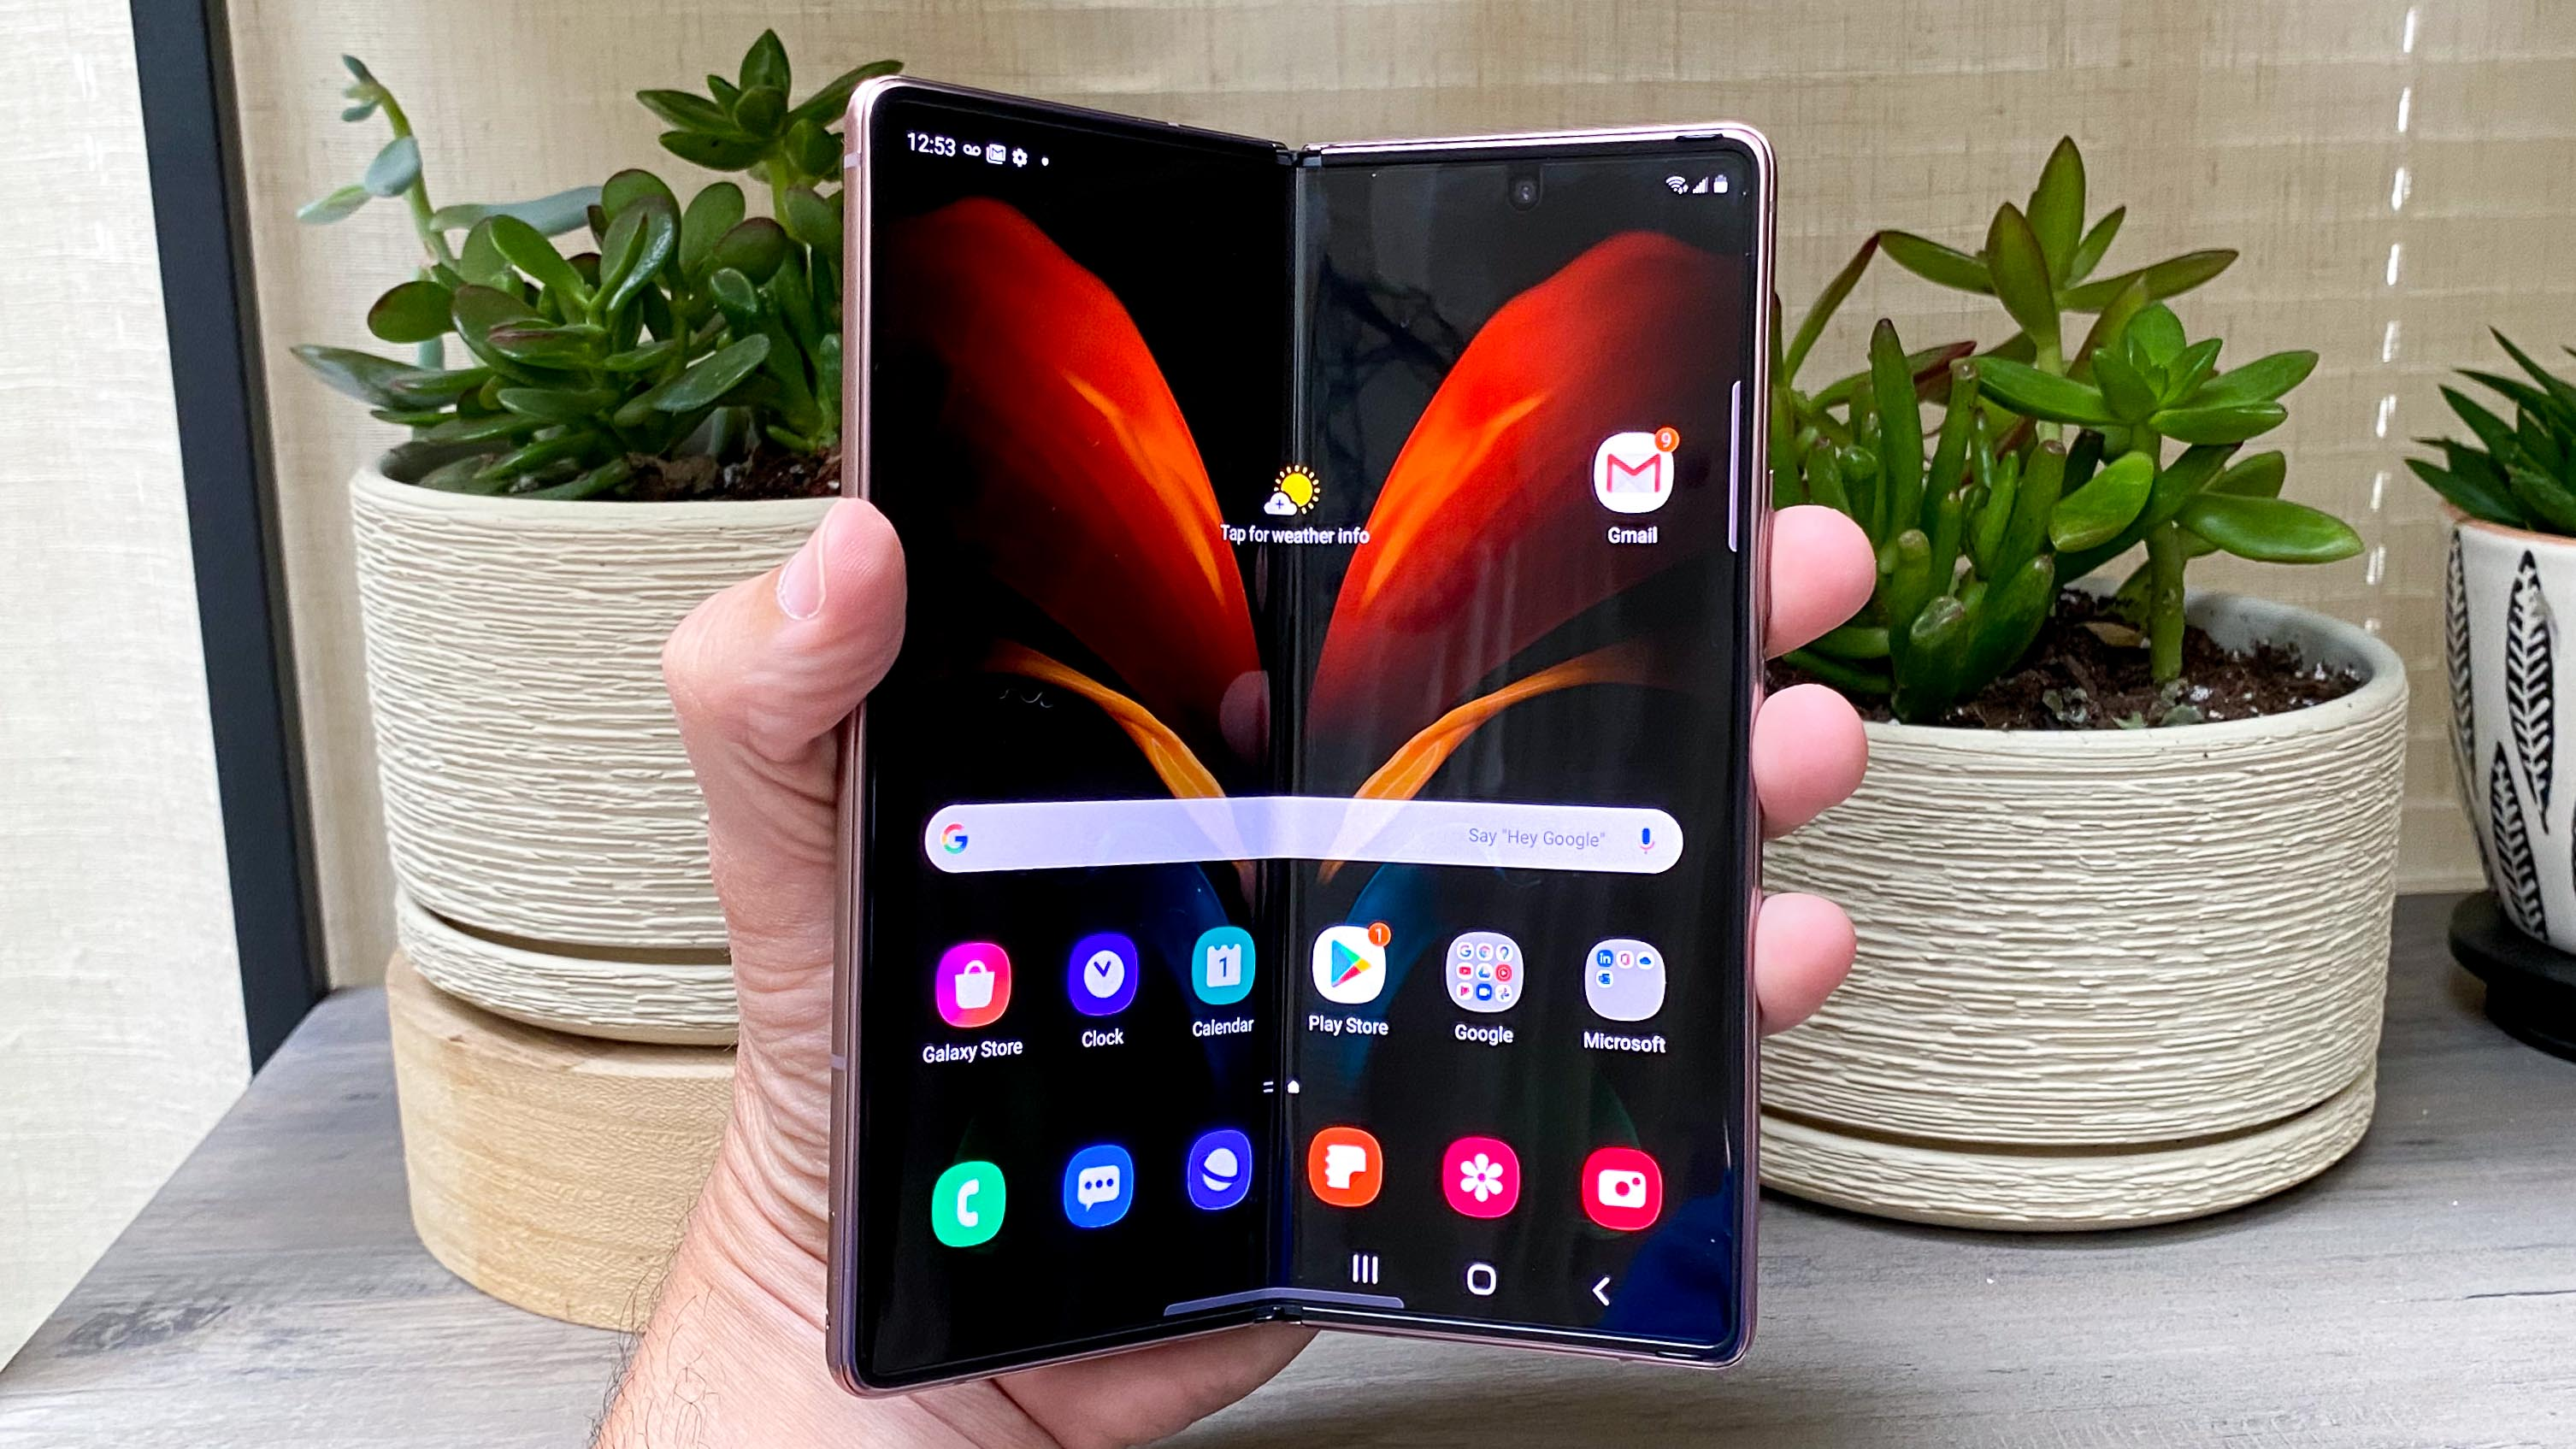 Samsung Galaxy Z Fold 2 Review A Truly Amazing Foldable Phone Tom S Guide